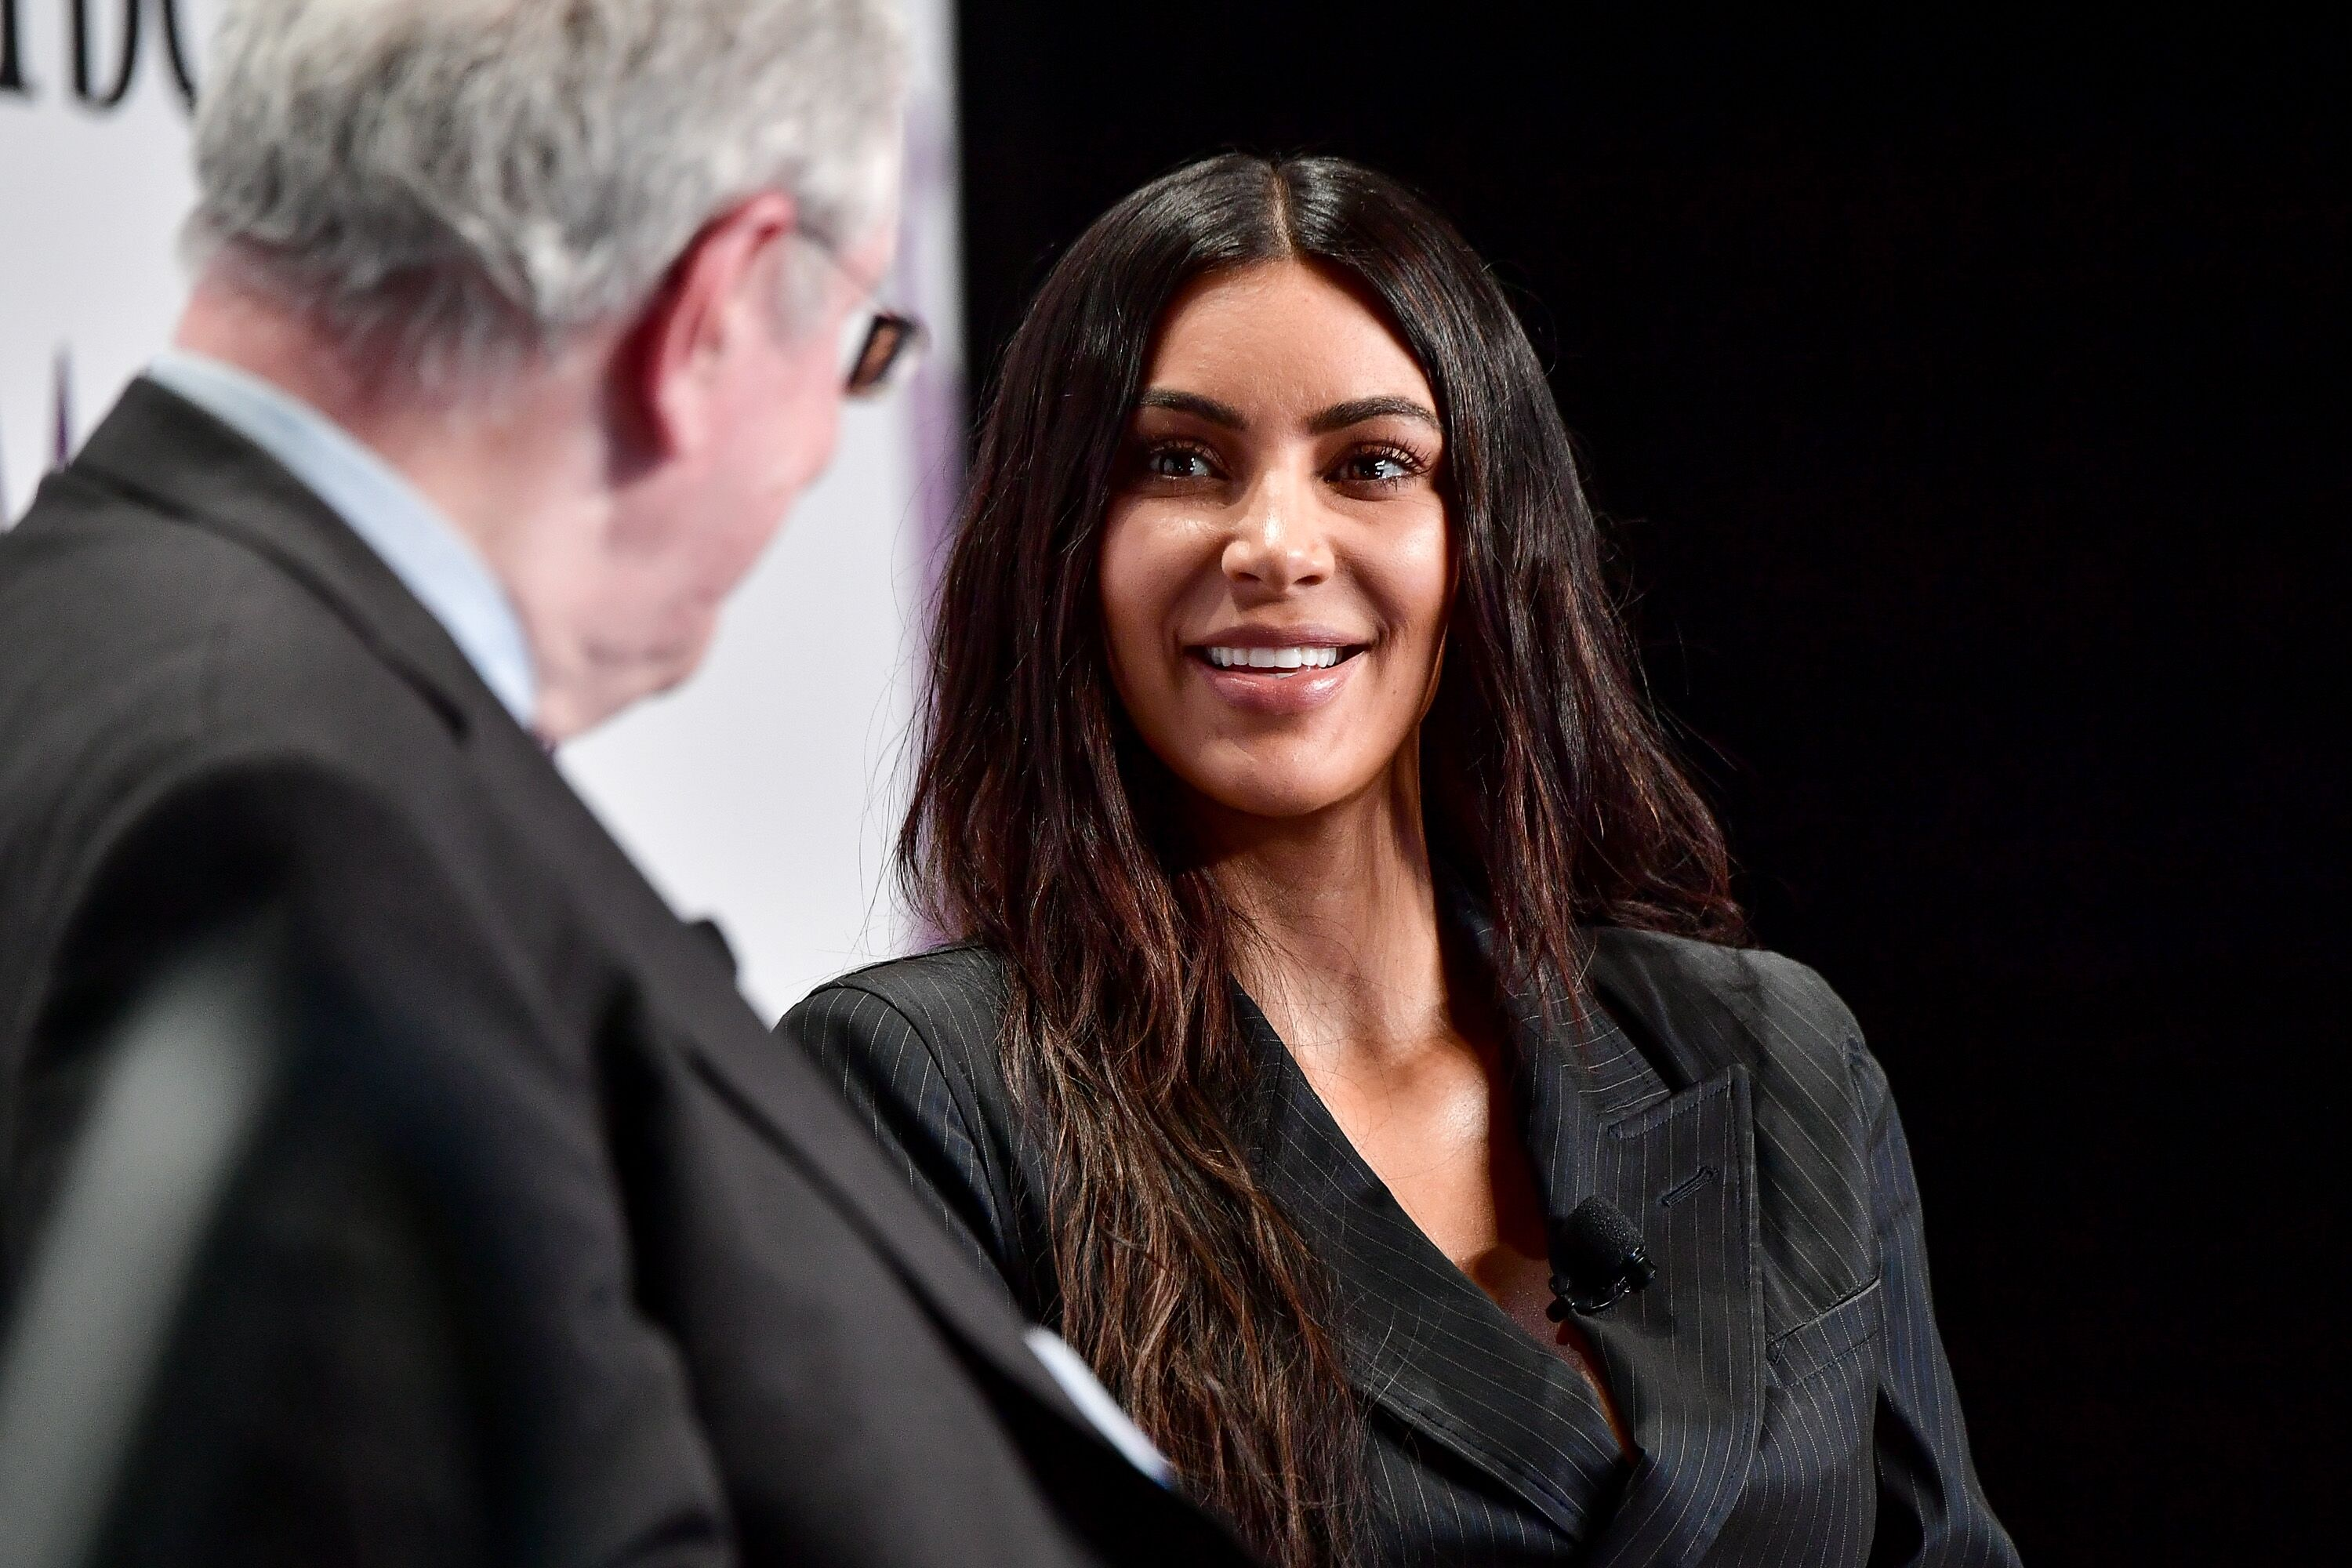 Kim Kardashian is naked again and this time, she climbed a tree [Photo]